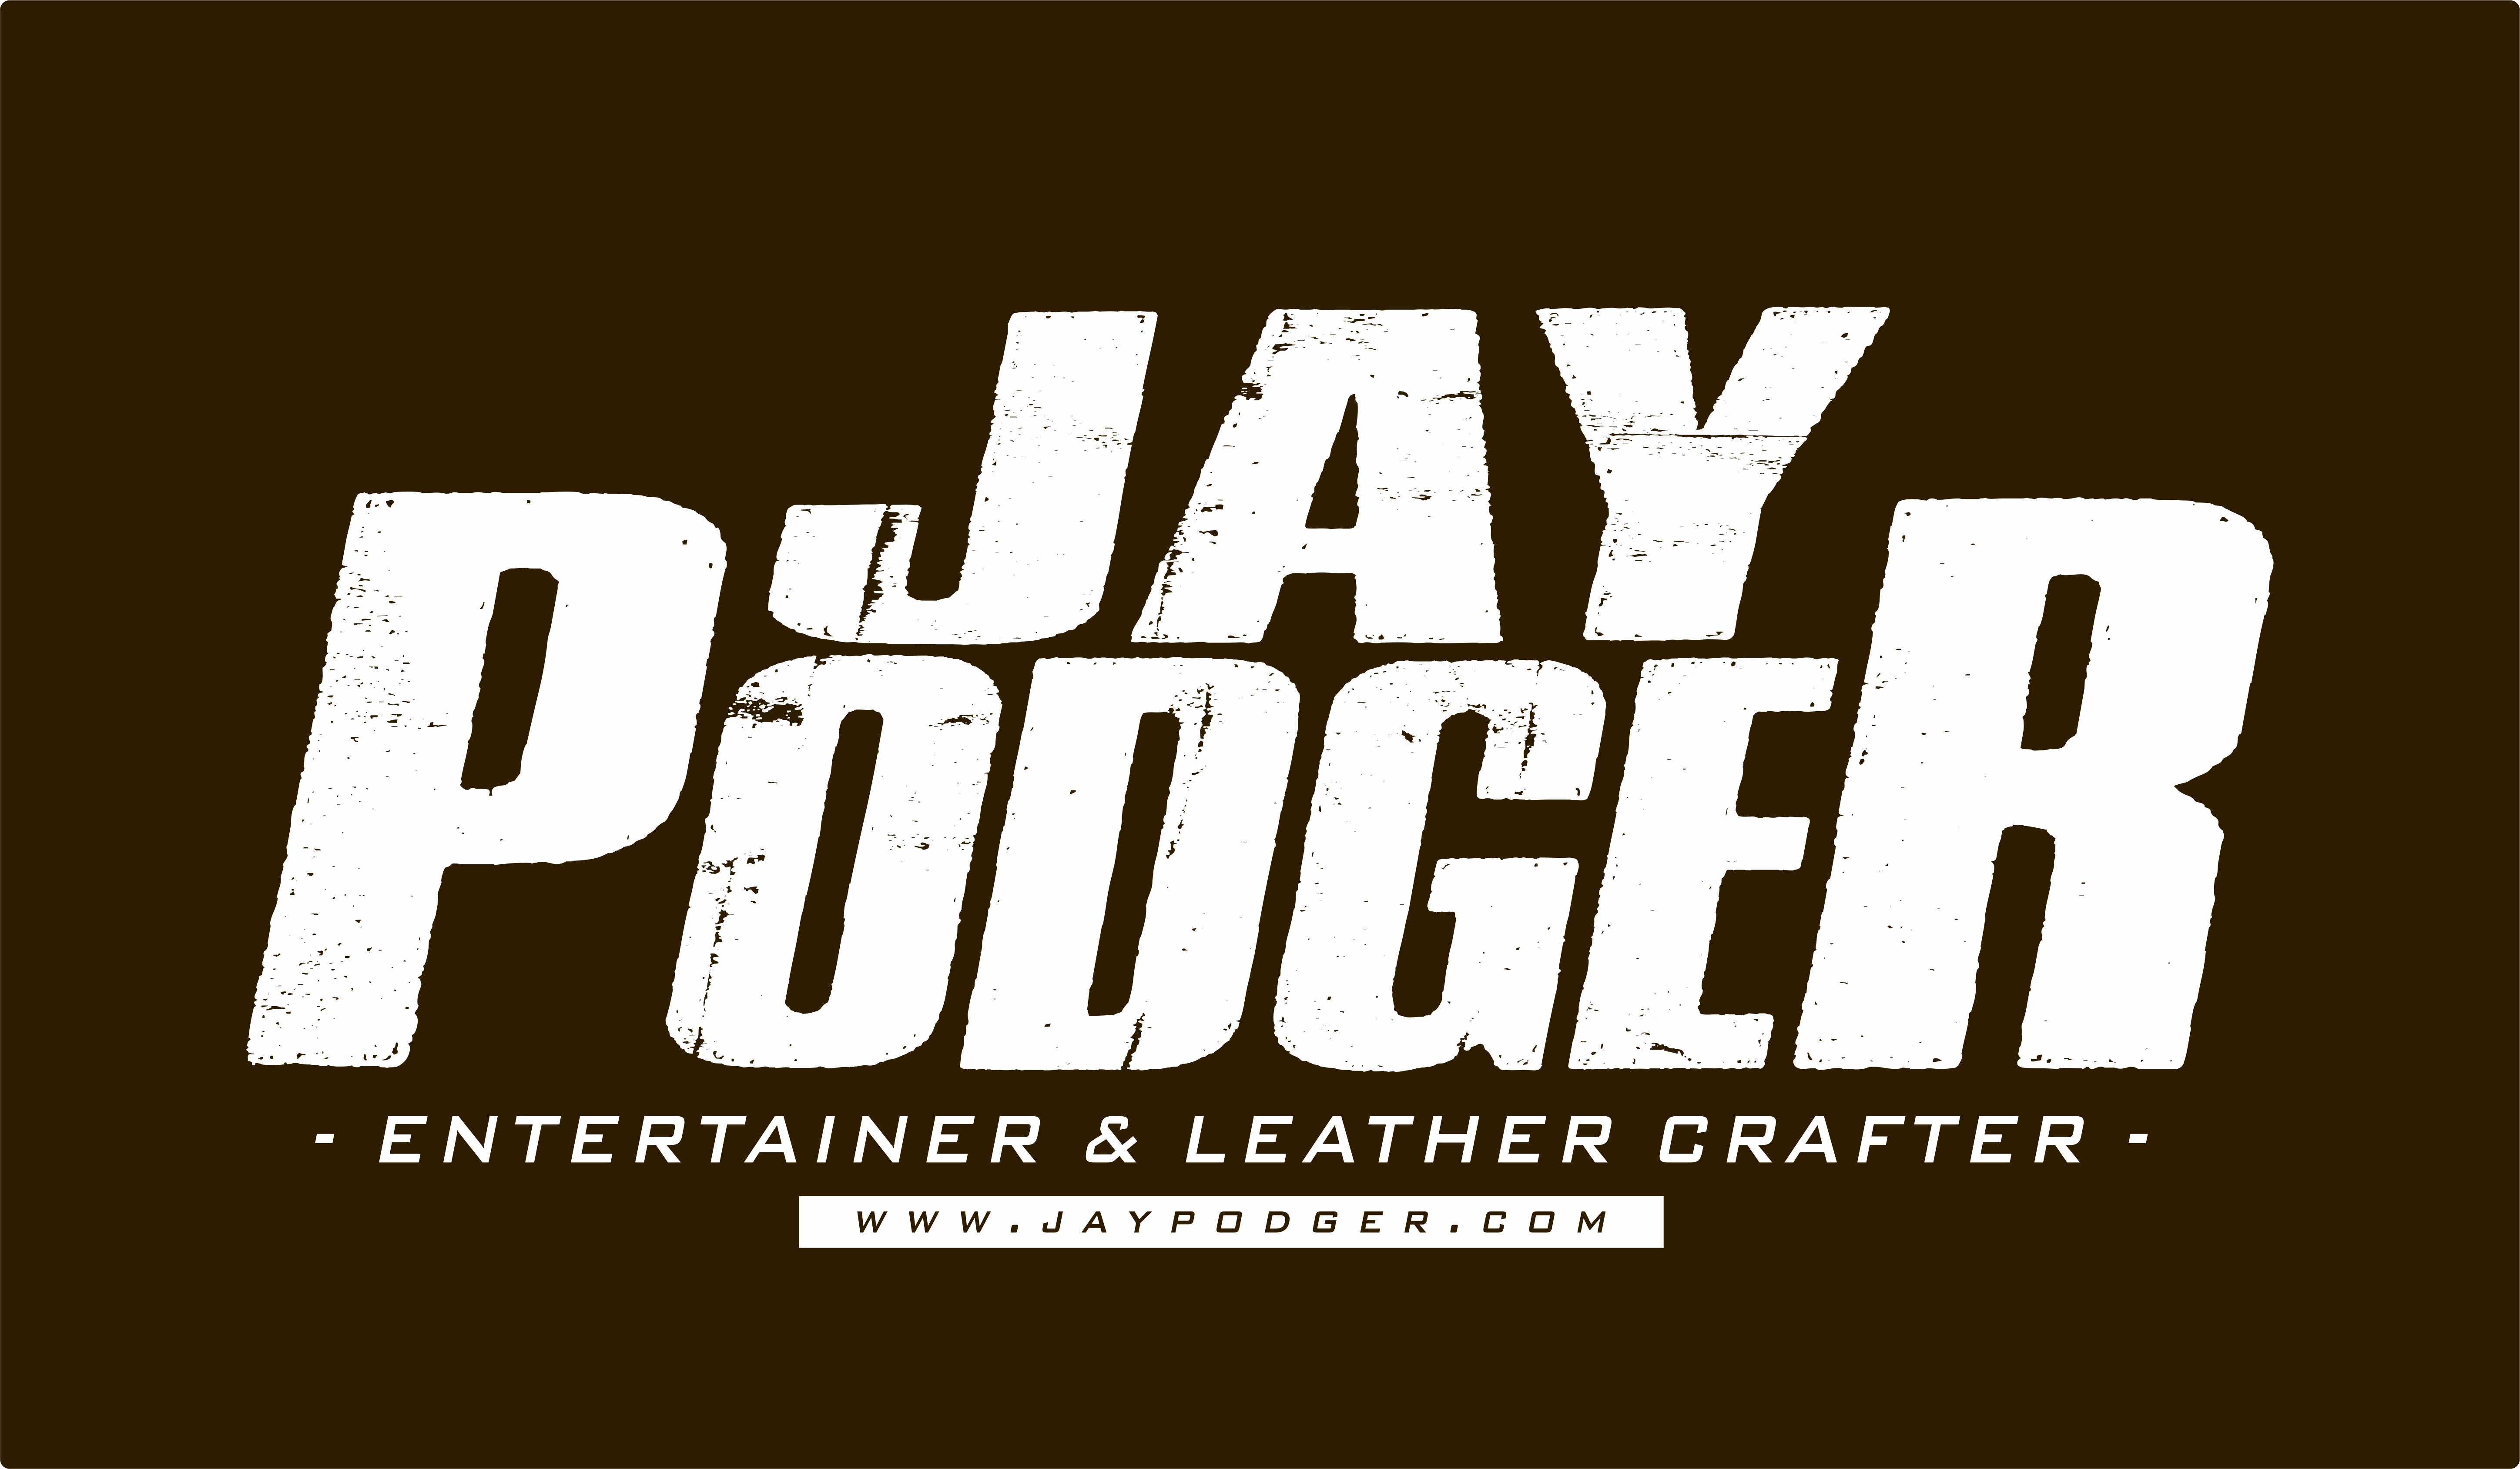 Jay Podger Entertainer & Leather crafter sticker